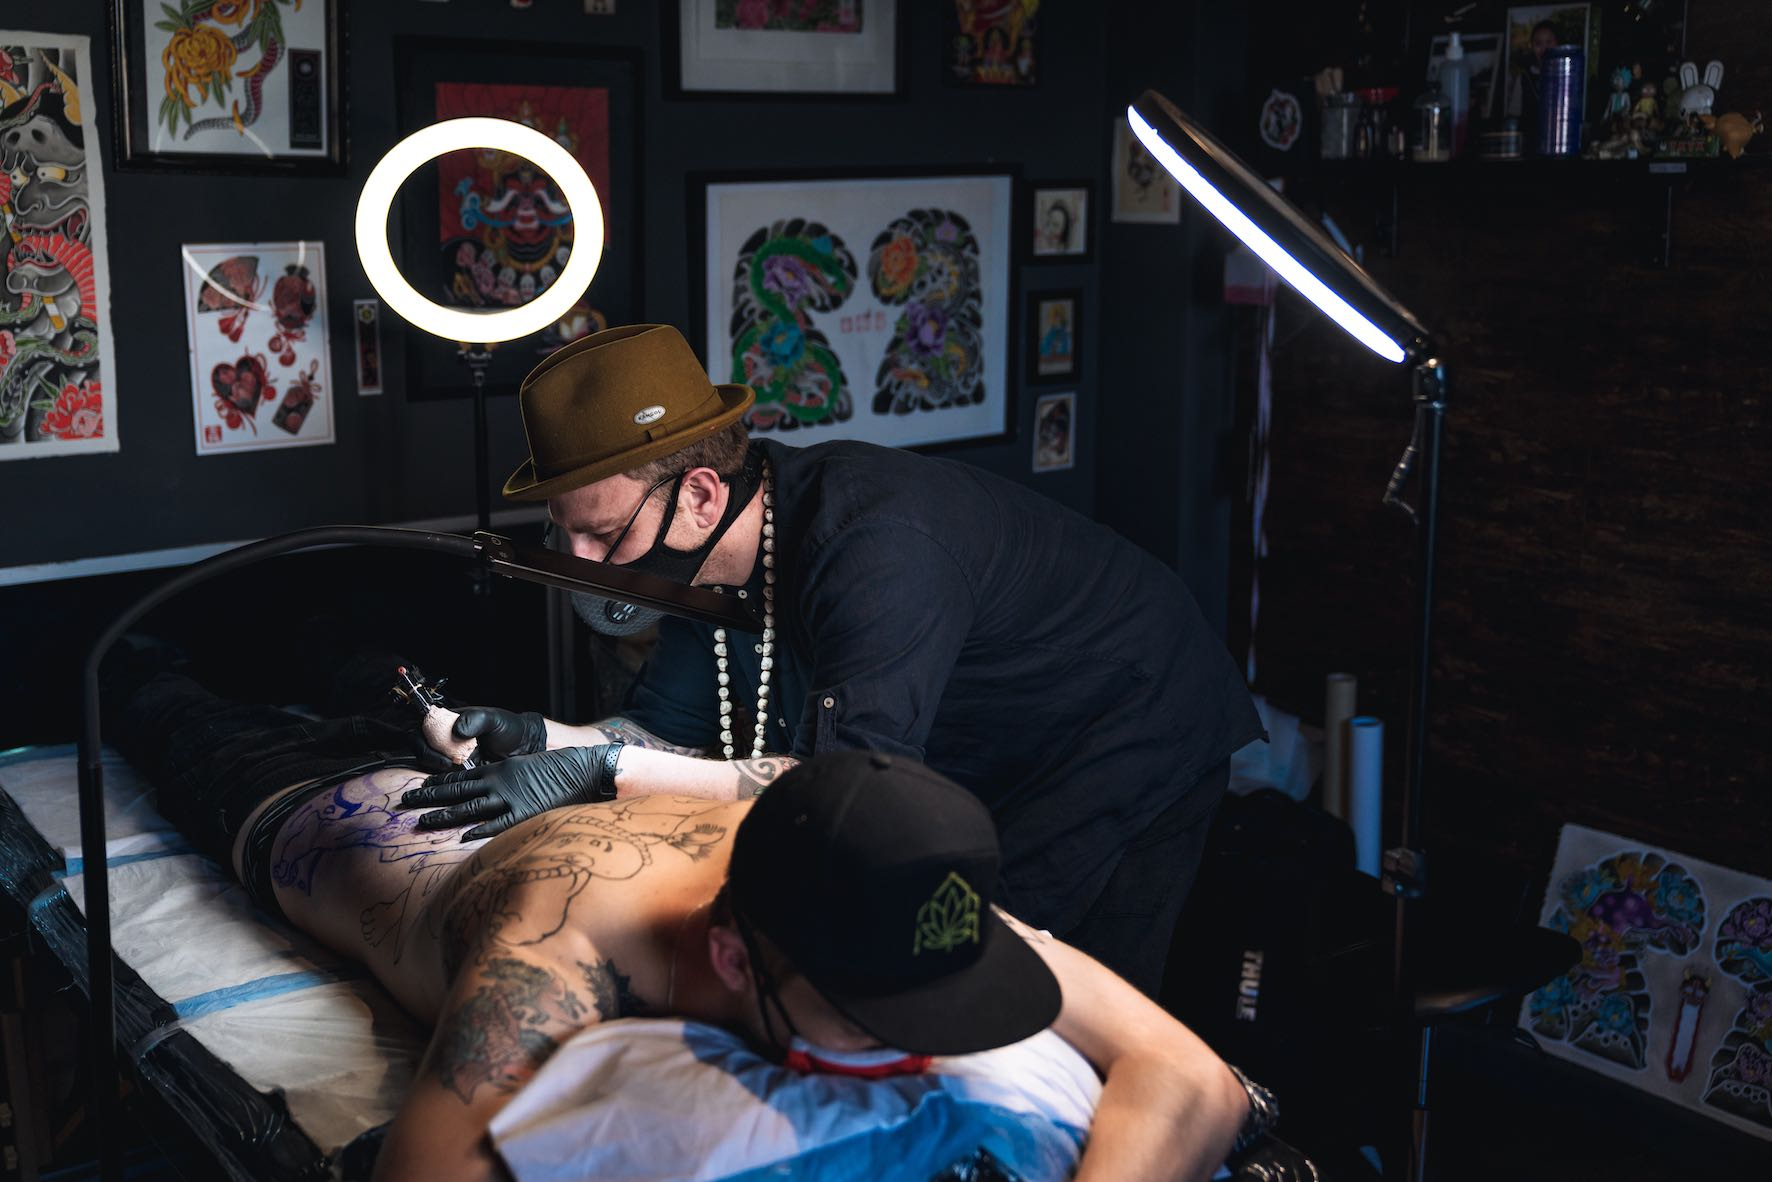 Meet Daniel Feinberg as our featured tattoo artist